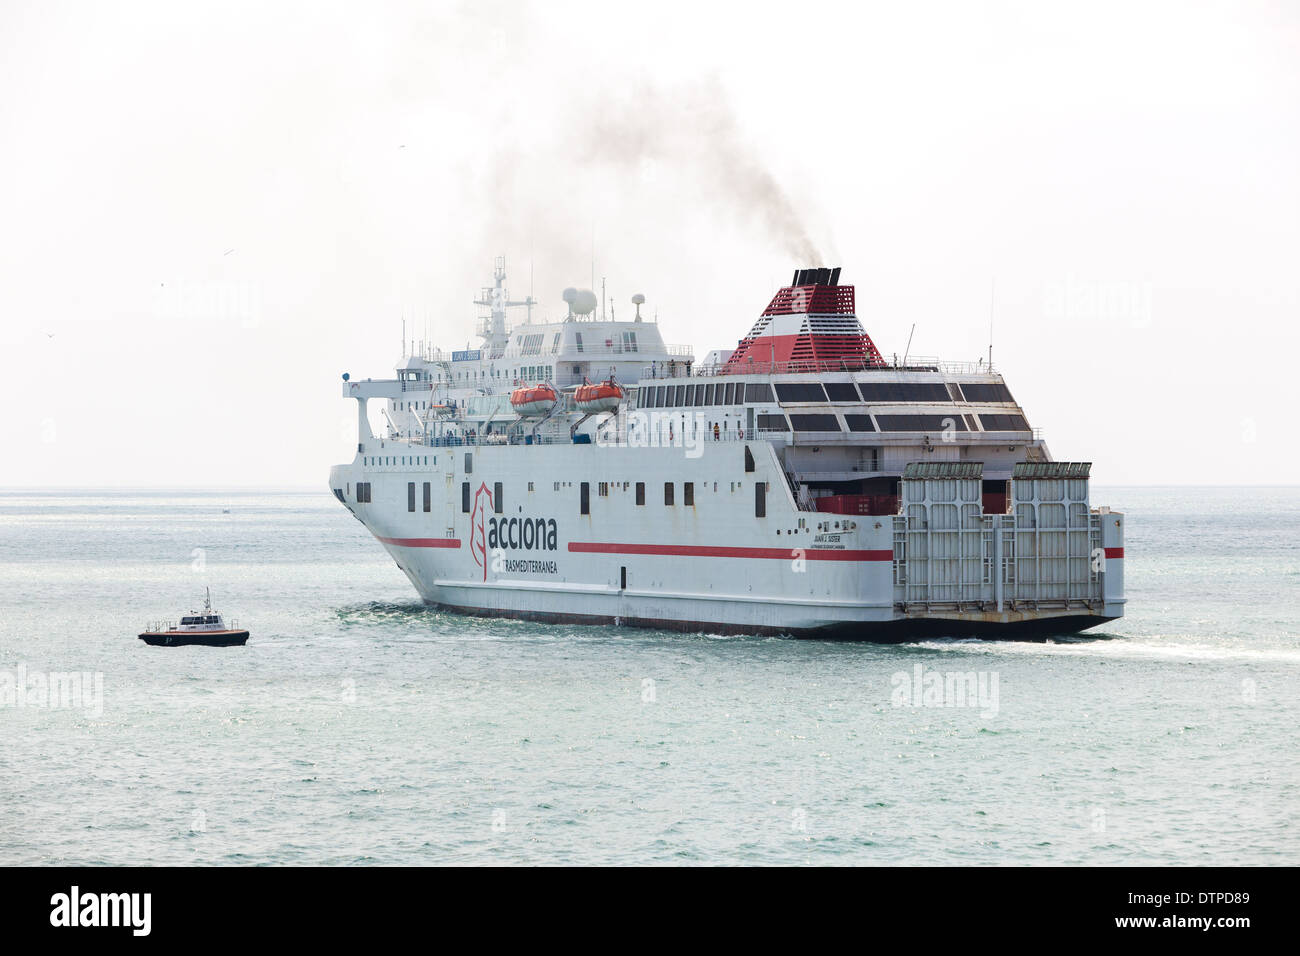 Passenger ferry departing Malaga Spain Stock Photo